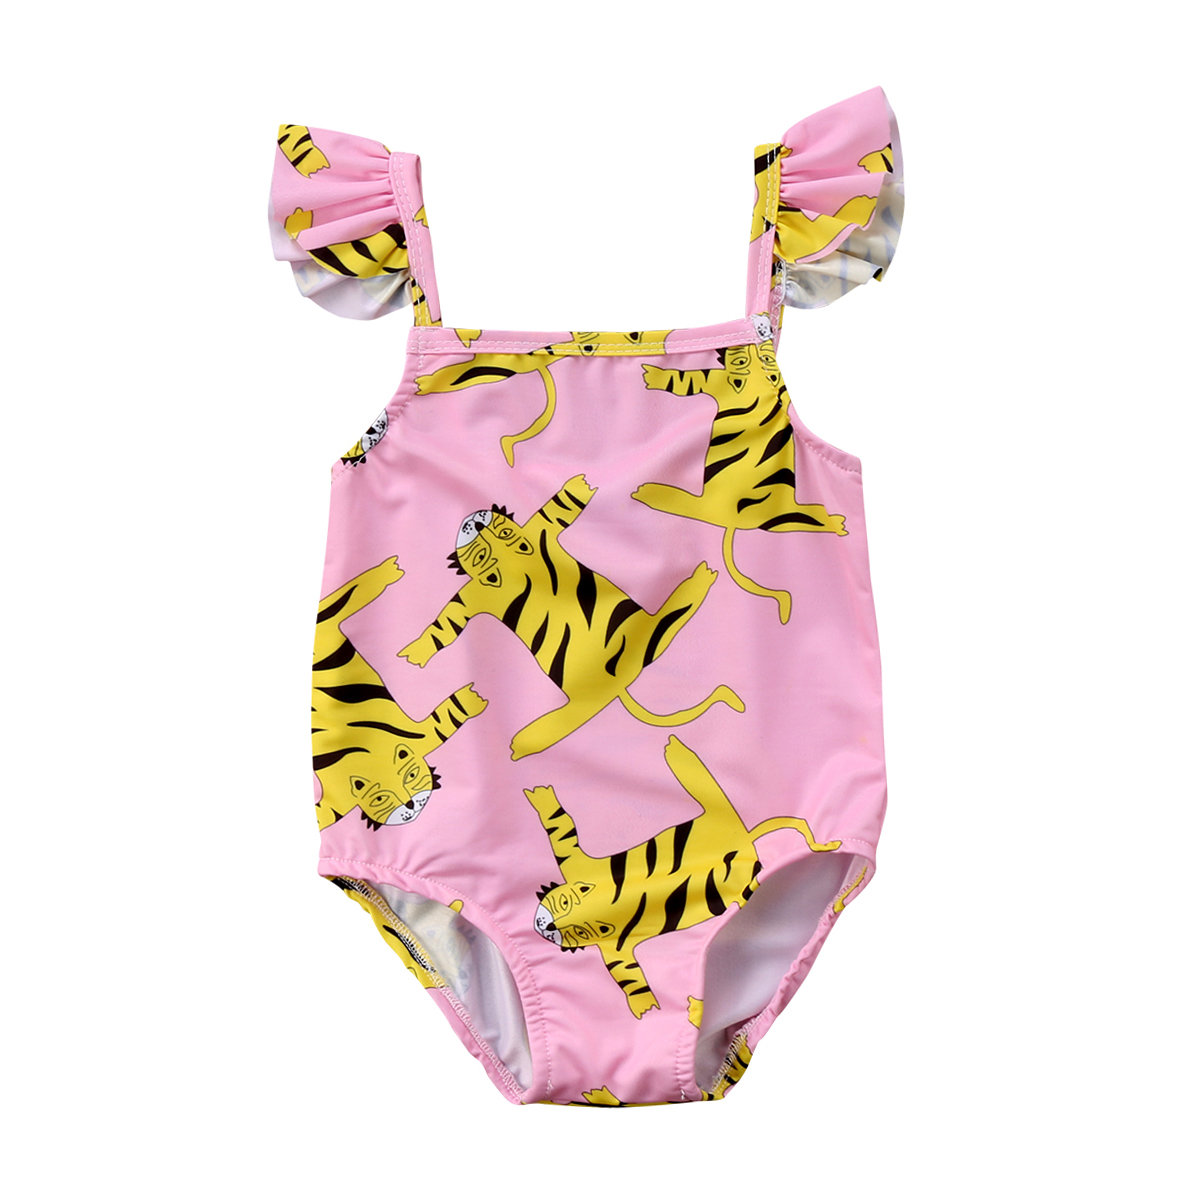 6f9b7564c69d Detail Feedback Questions about 2018 Toddler Kid Baby Girl Sleeveless Swimwear  Swimsuit Bikini Tiger Bathing Swimming Cartoon Pink Summer Costume on ...